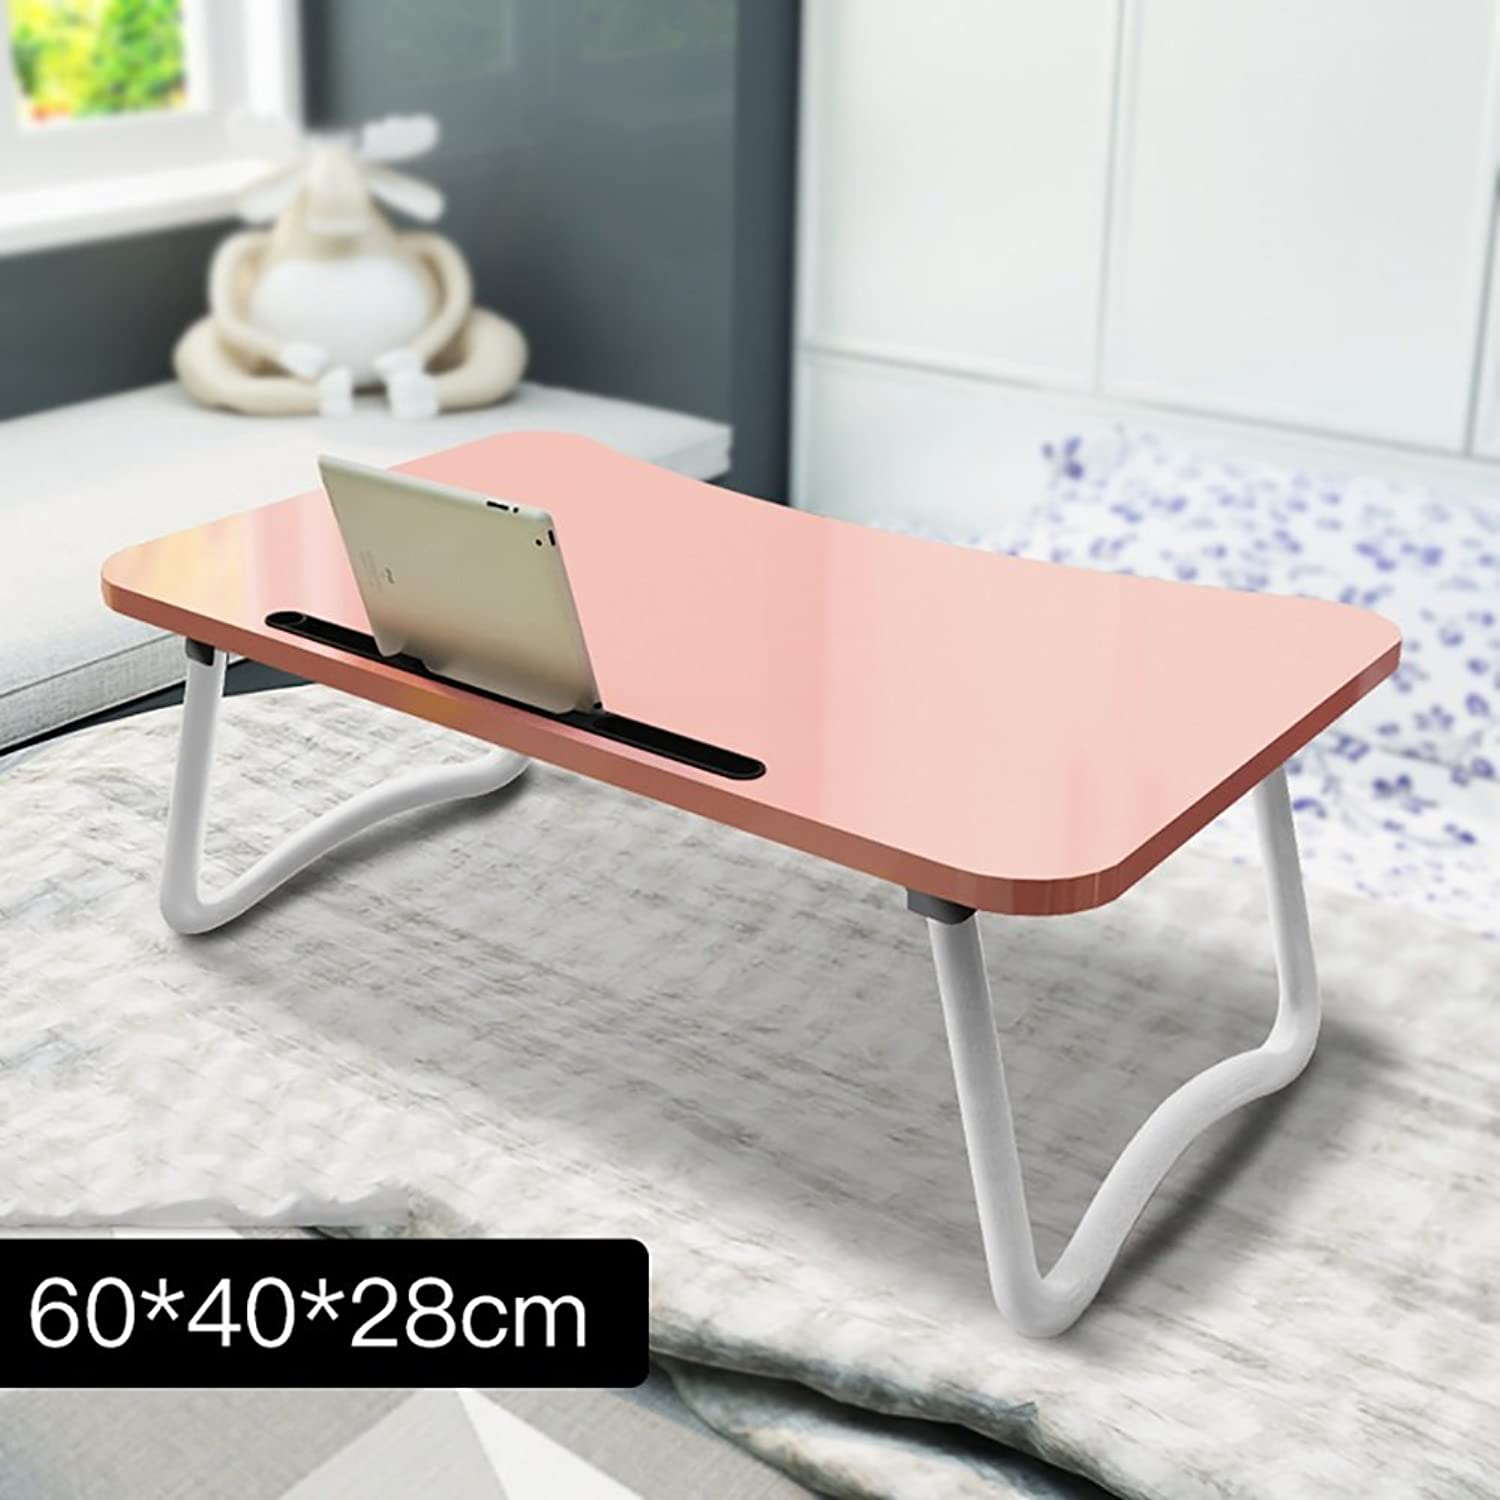 MEI XU Laptop Desk - Small Wooden Folding Desk Desk - Mobile Rack Outdoor Folding Kitchen and Dining Table Camping Picnic @